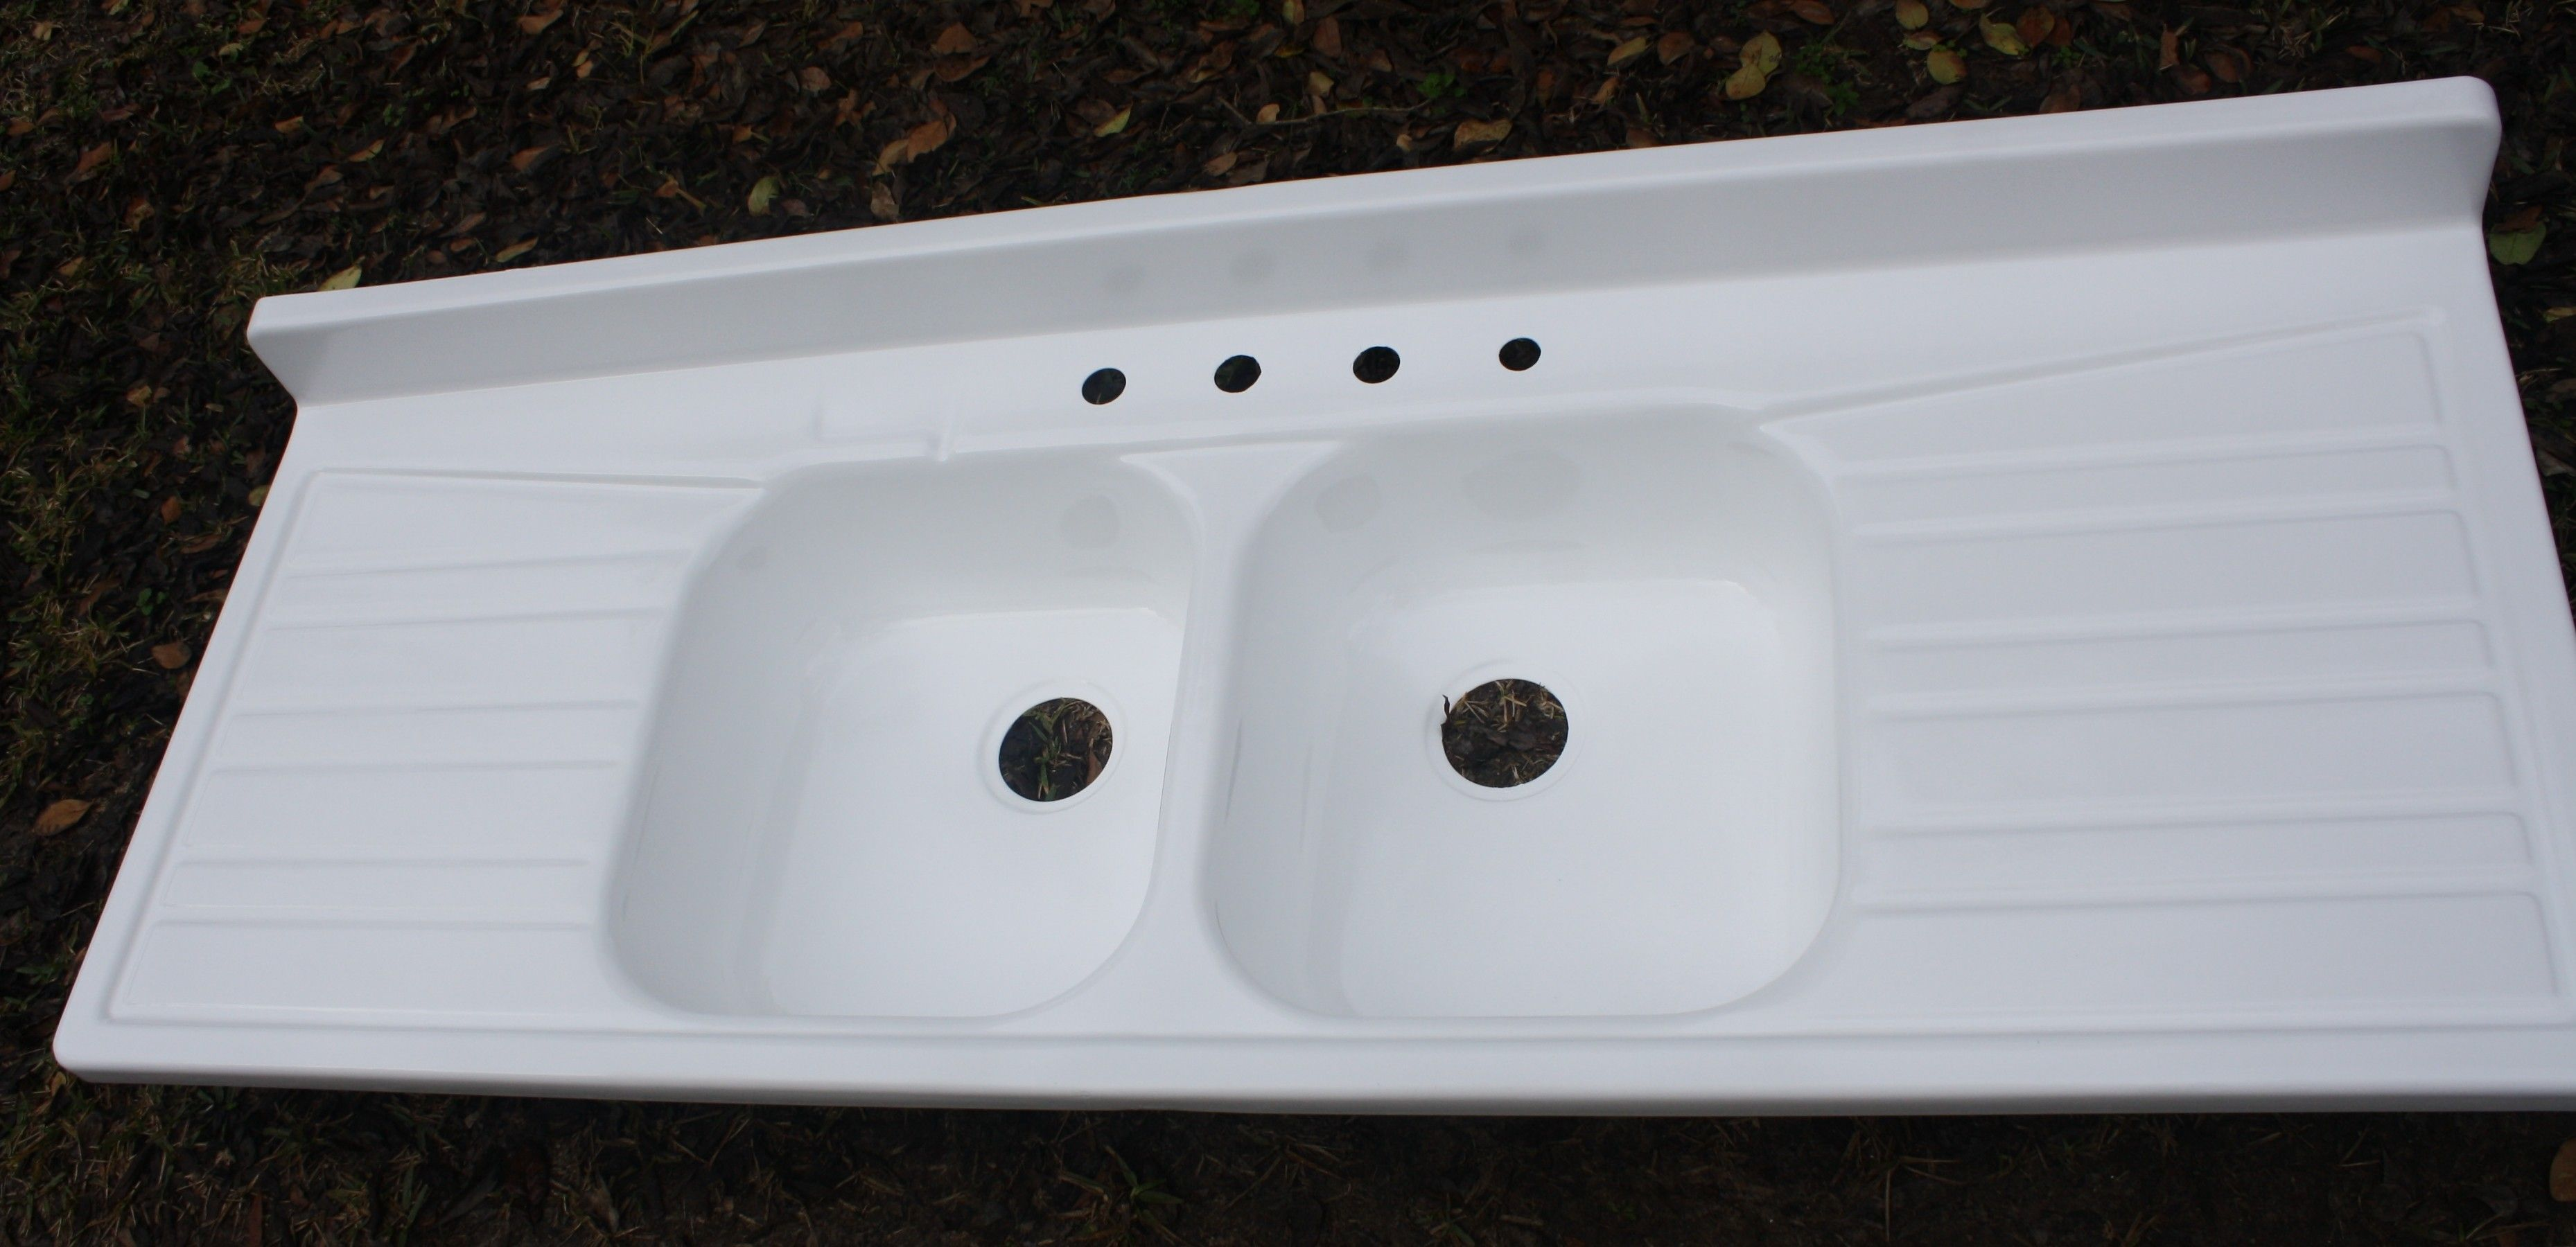 Large Ceramic Or Enameled Sinks With Drain Board 1950 S Enamel